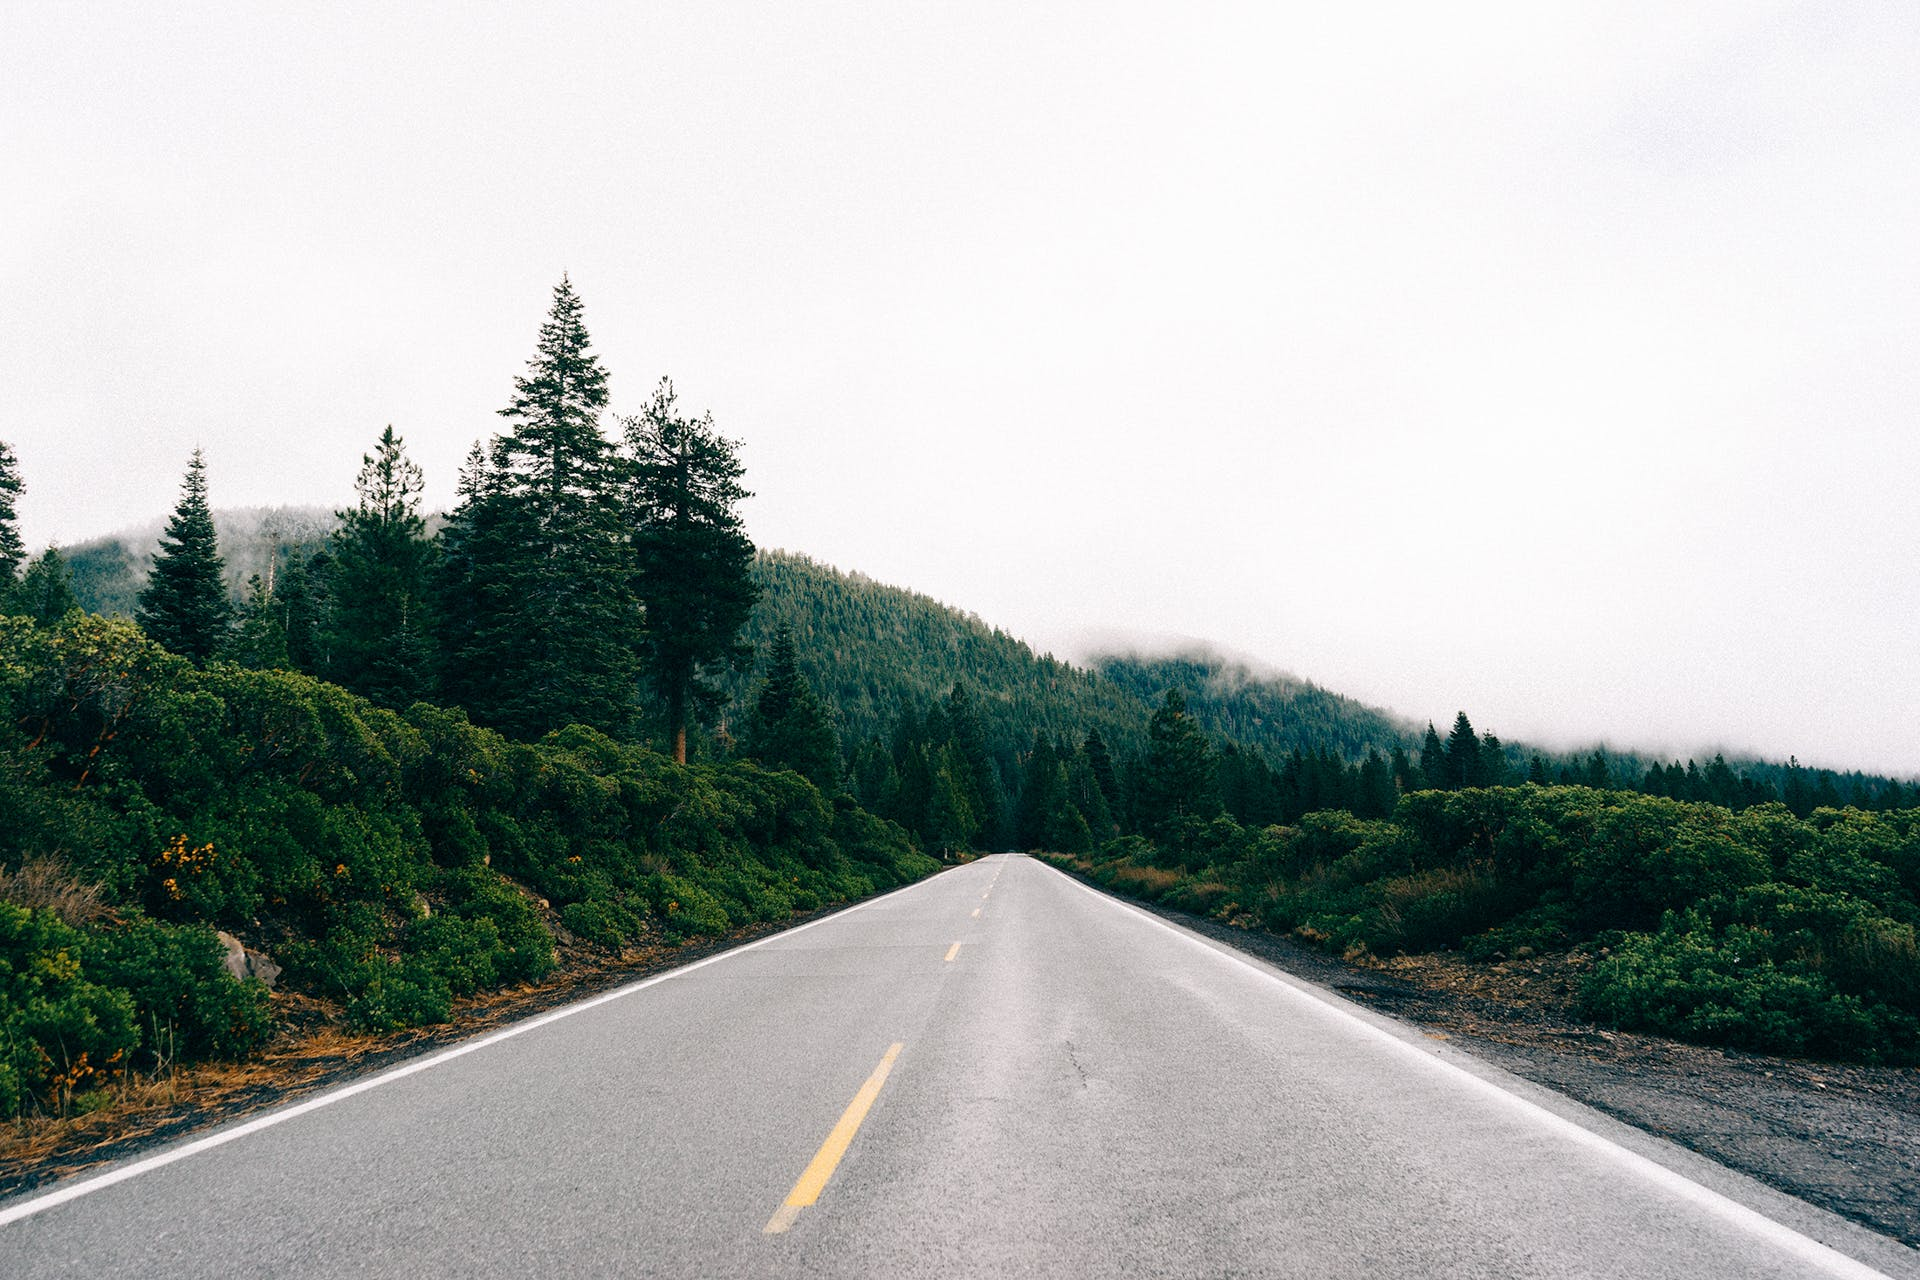 Free stock photo of road, straight